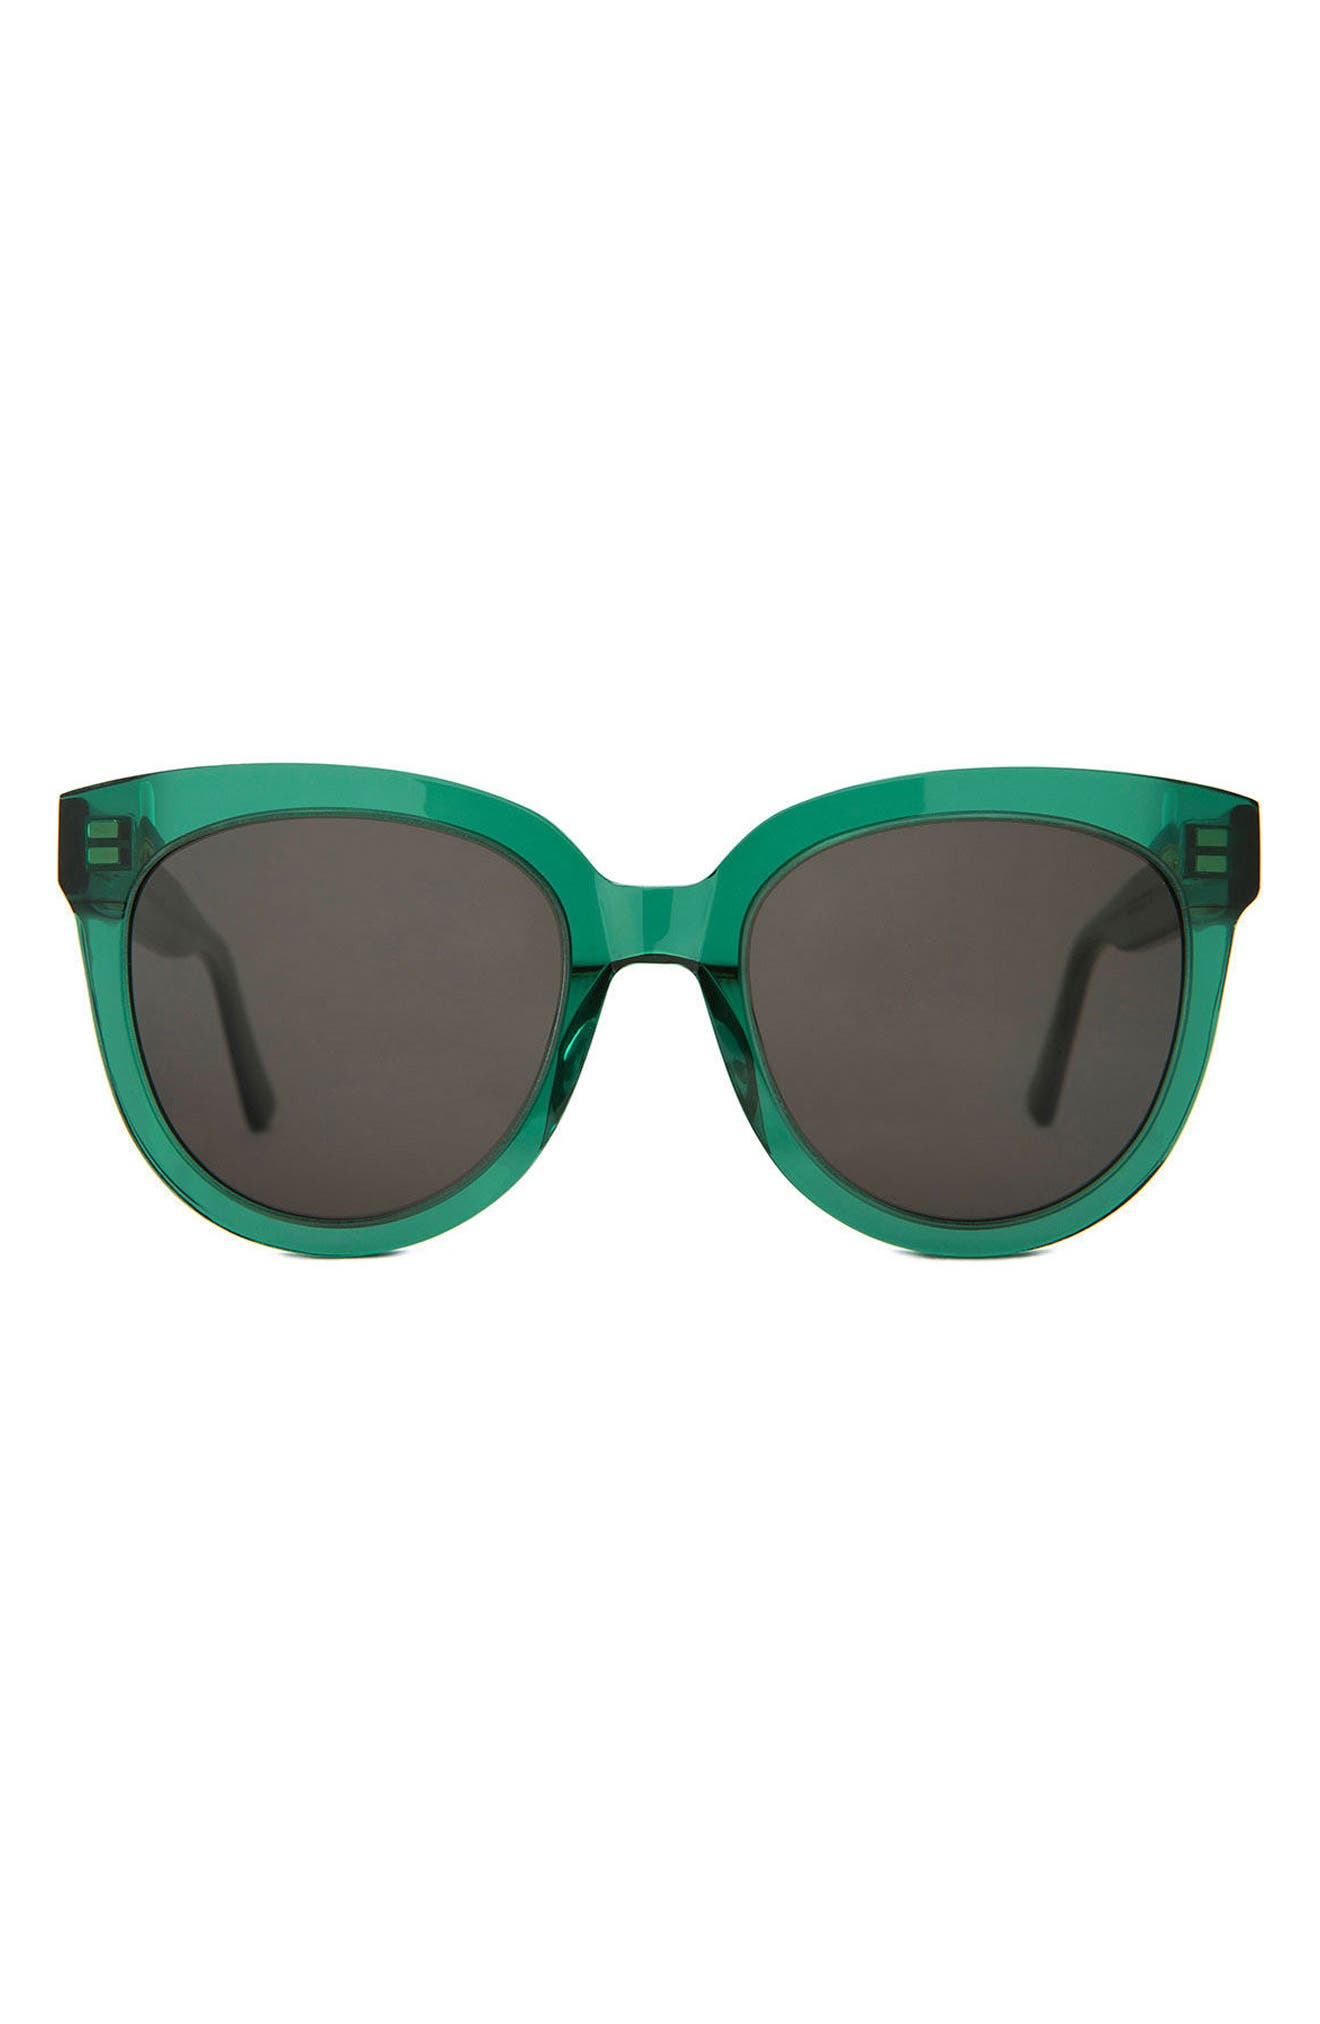 Illusion 53mm Sunglasses,                             Main thumbnail 1, color,                             300